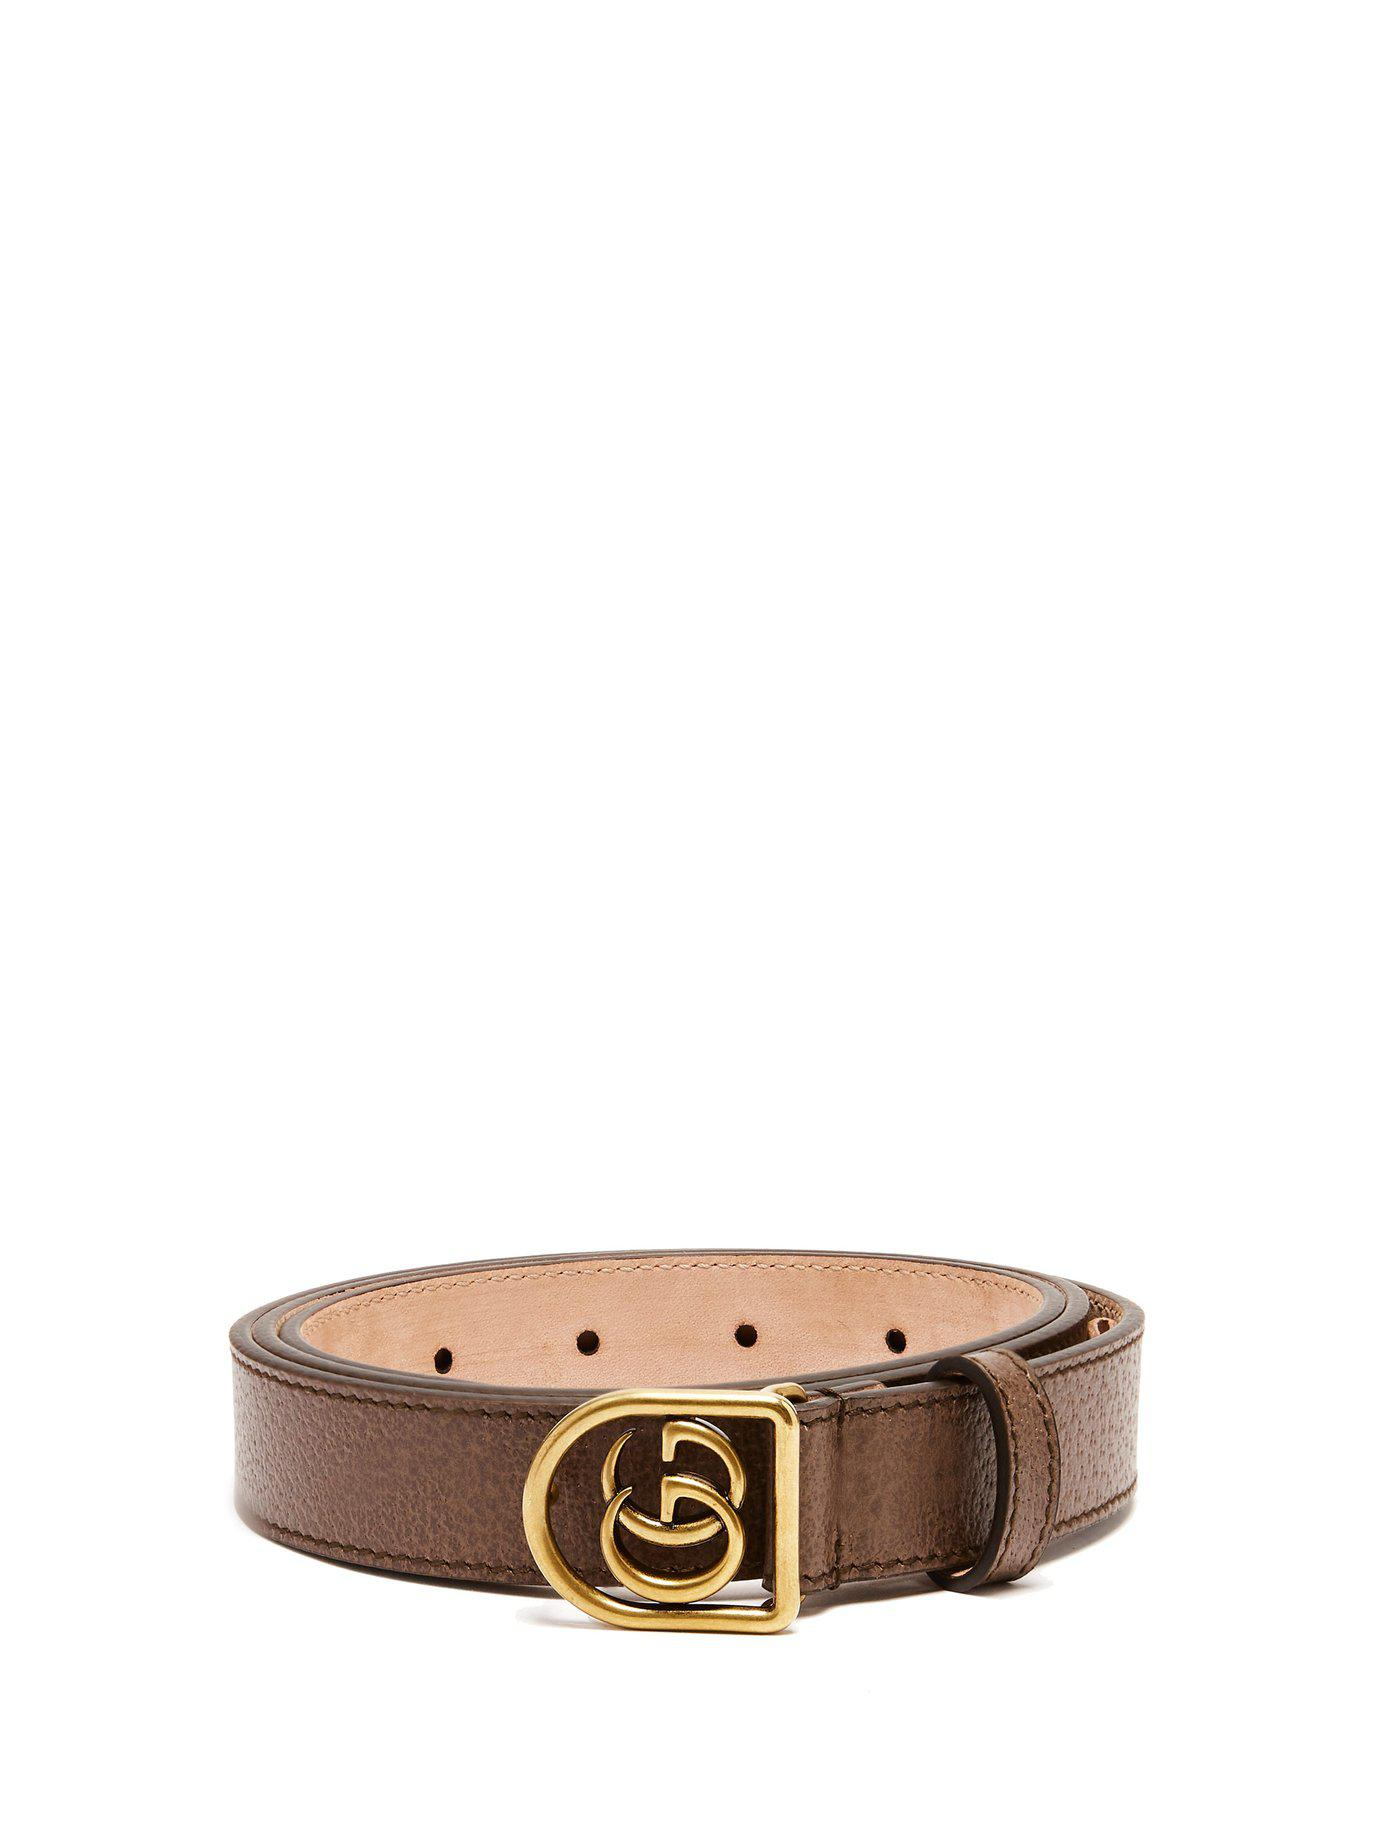 607c64f86c1 Lyst - Gucci Gg Leather Belt in Brown for Men - Save 53%